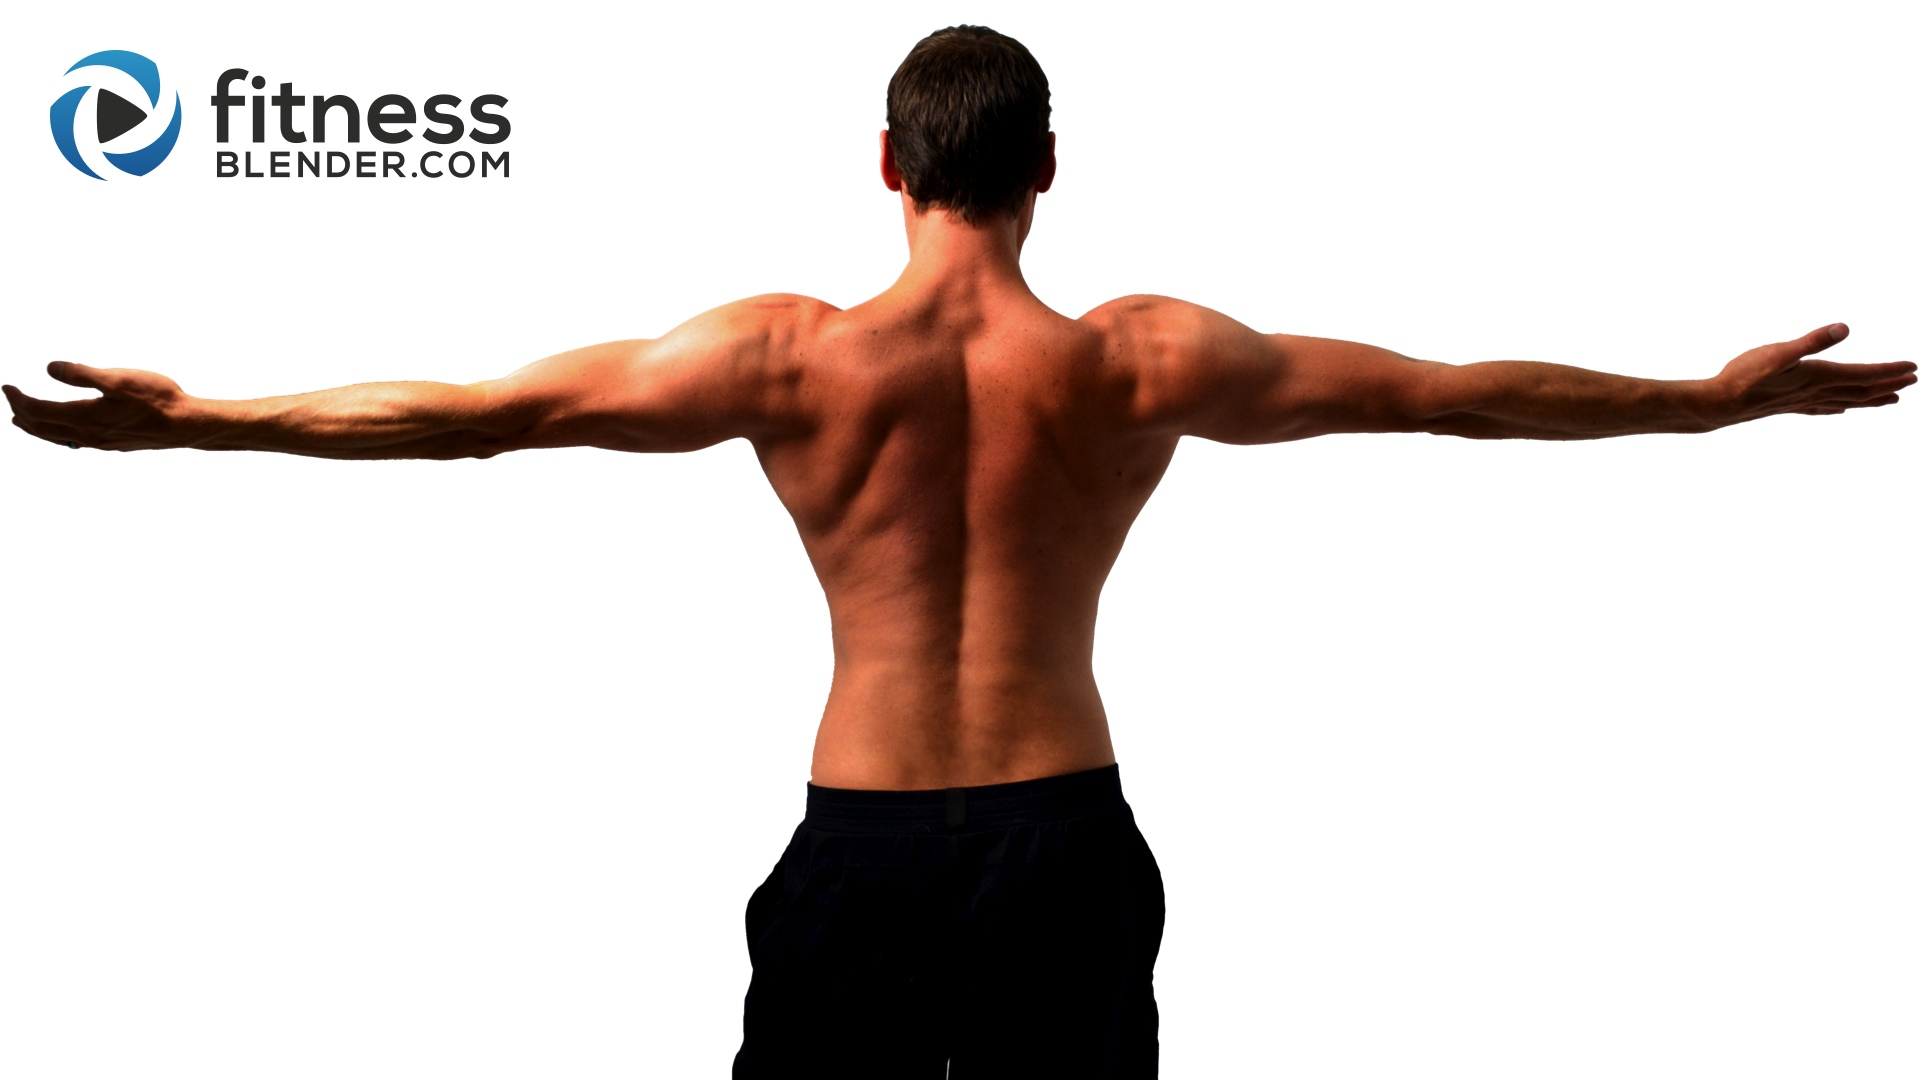 Upper Body Strength And Cardio Workout Superset Supersets More Circuit Workouts Gym Fitness Blender